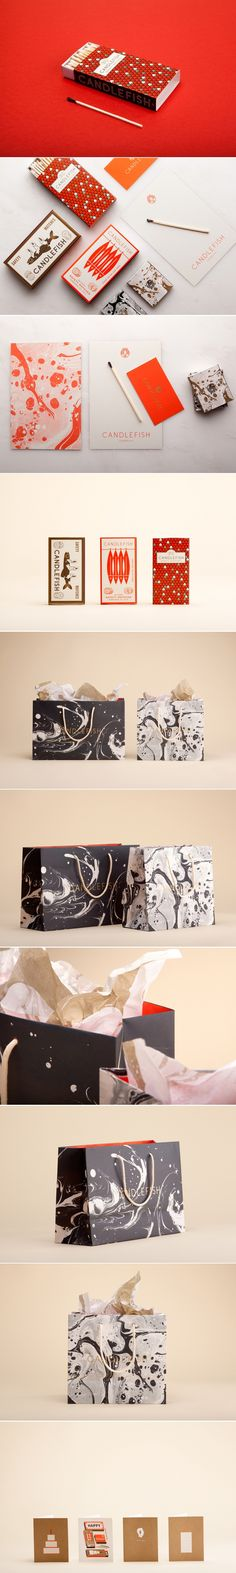 Candlefish — The Dieline | Packaging & Branding Design & Innovation News